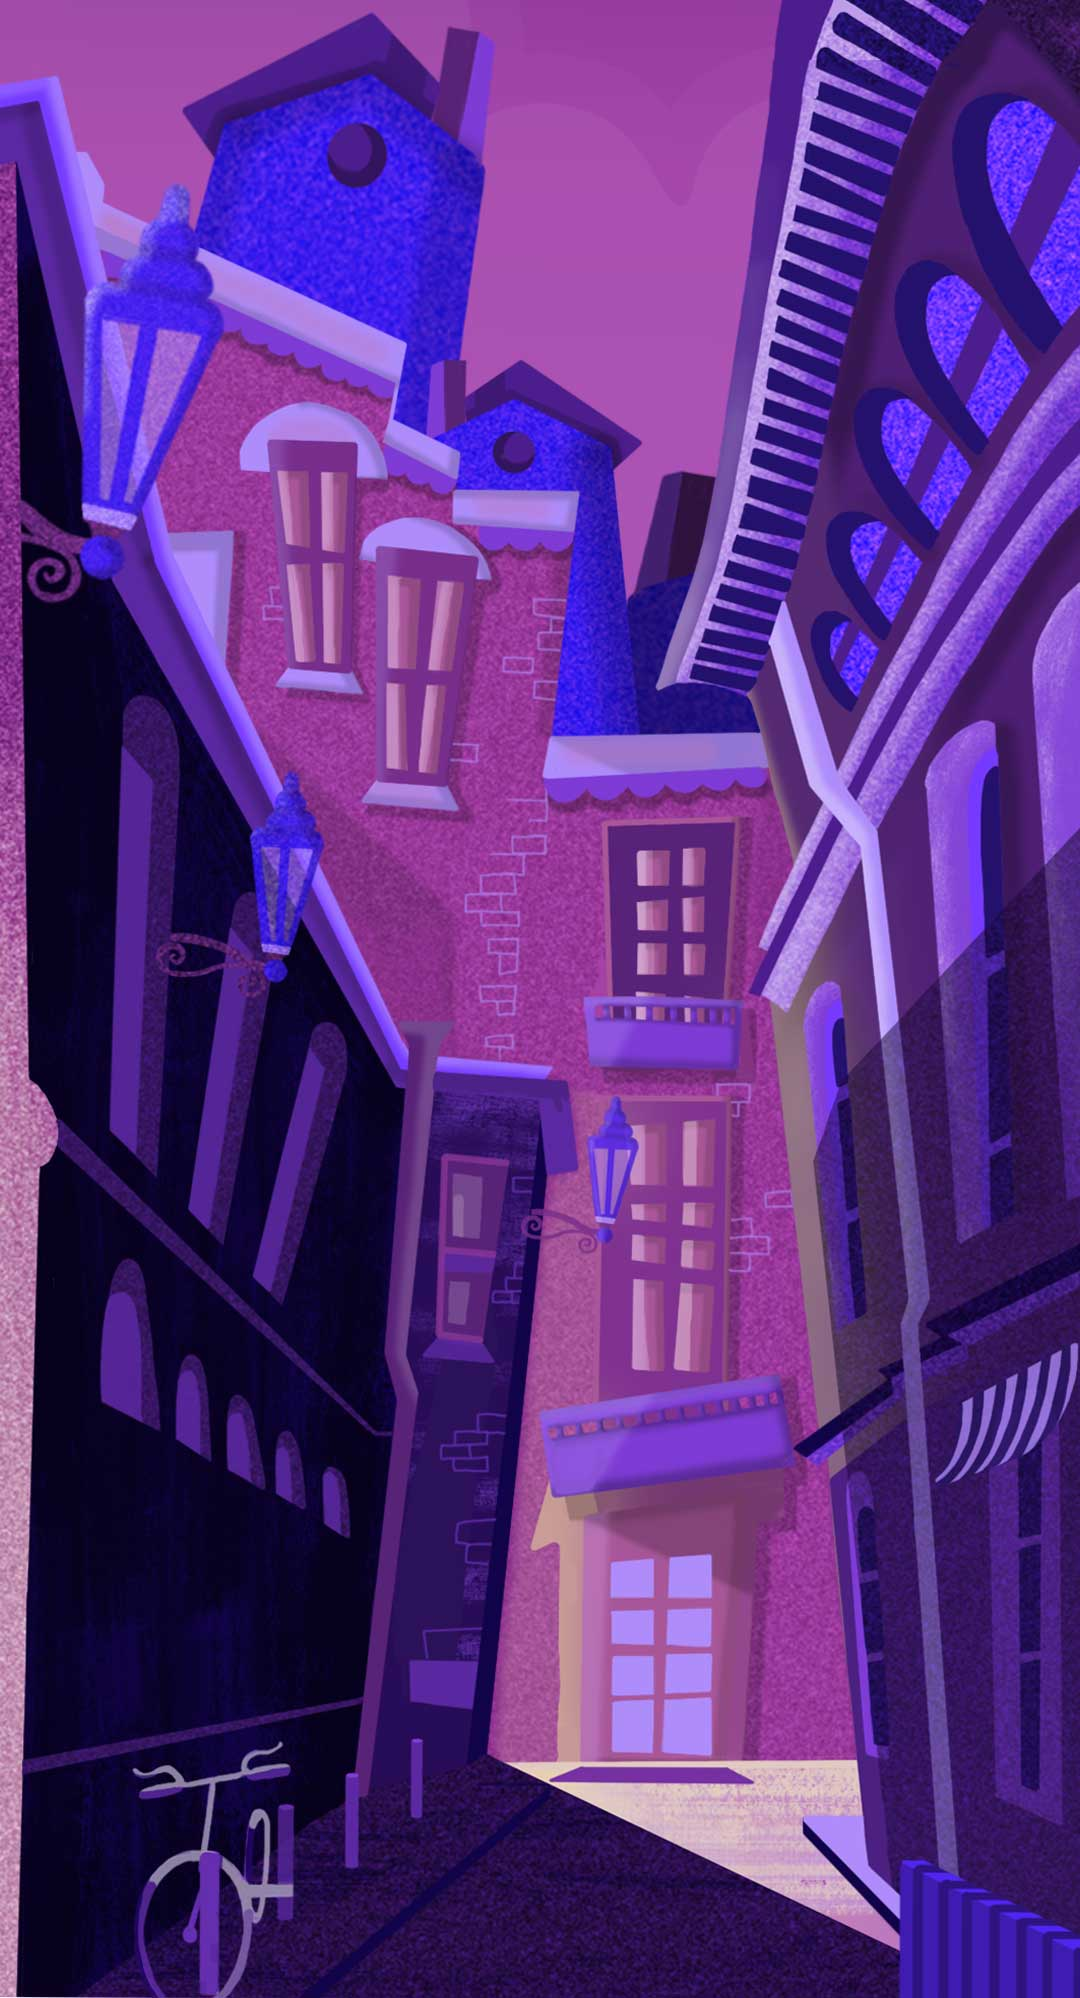 portrait illustration of a street at night with purple lighting